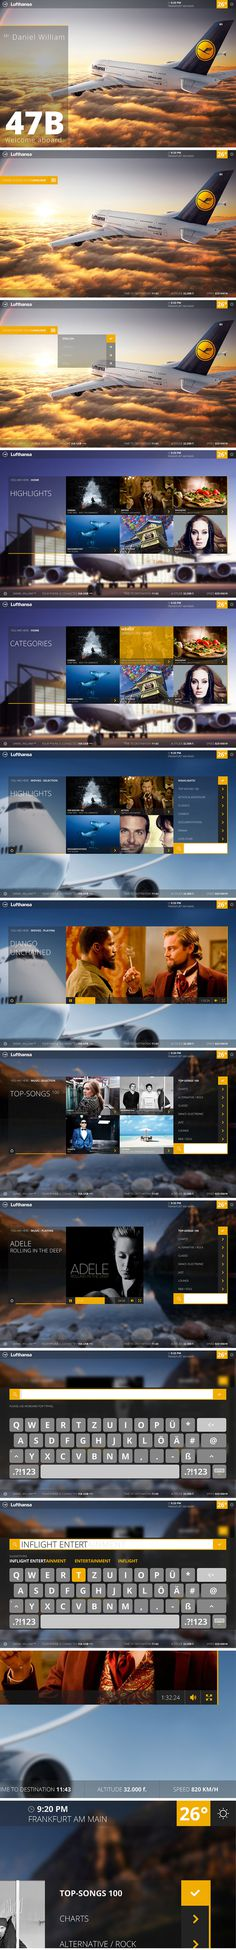 Lufthansa Inflight Entertainment System. #ui #ux #webdesign #lufthansa #app #graphic